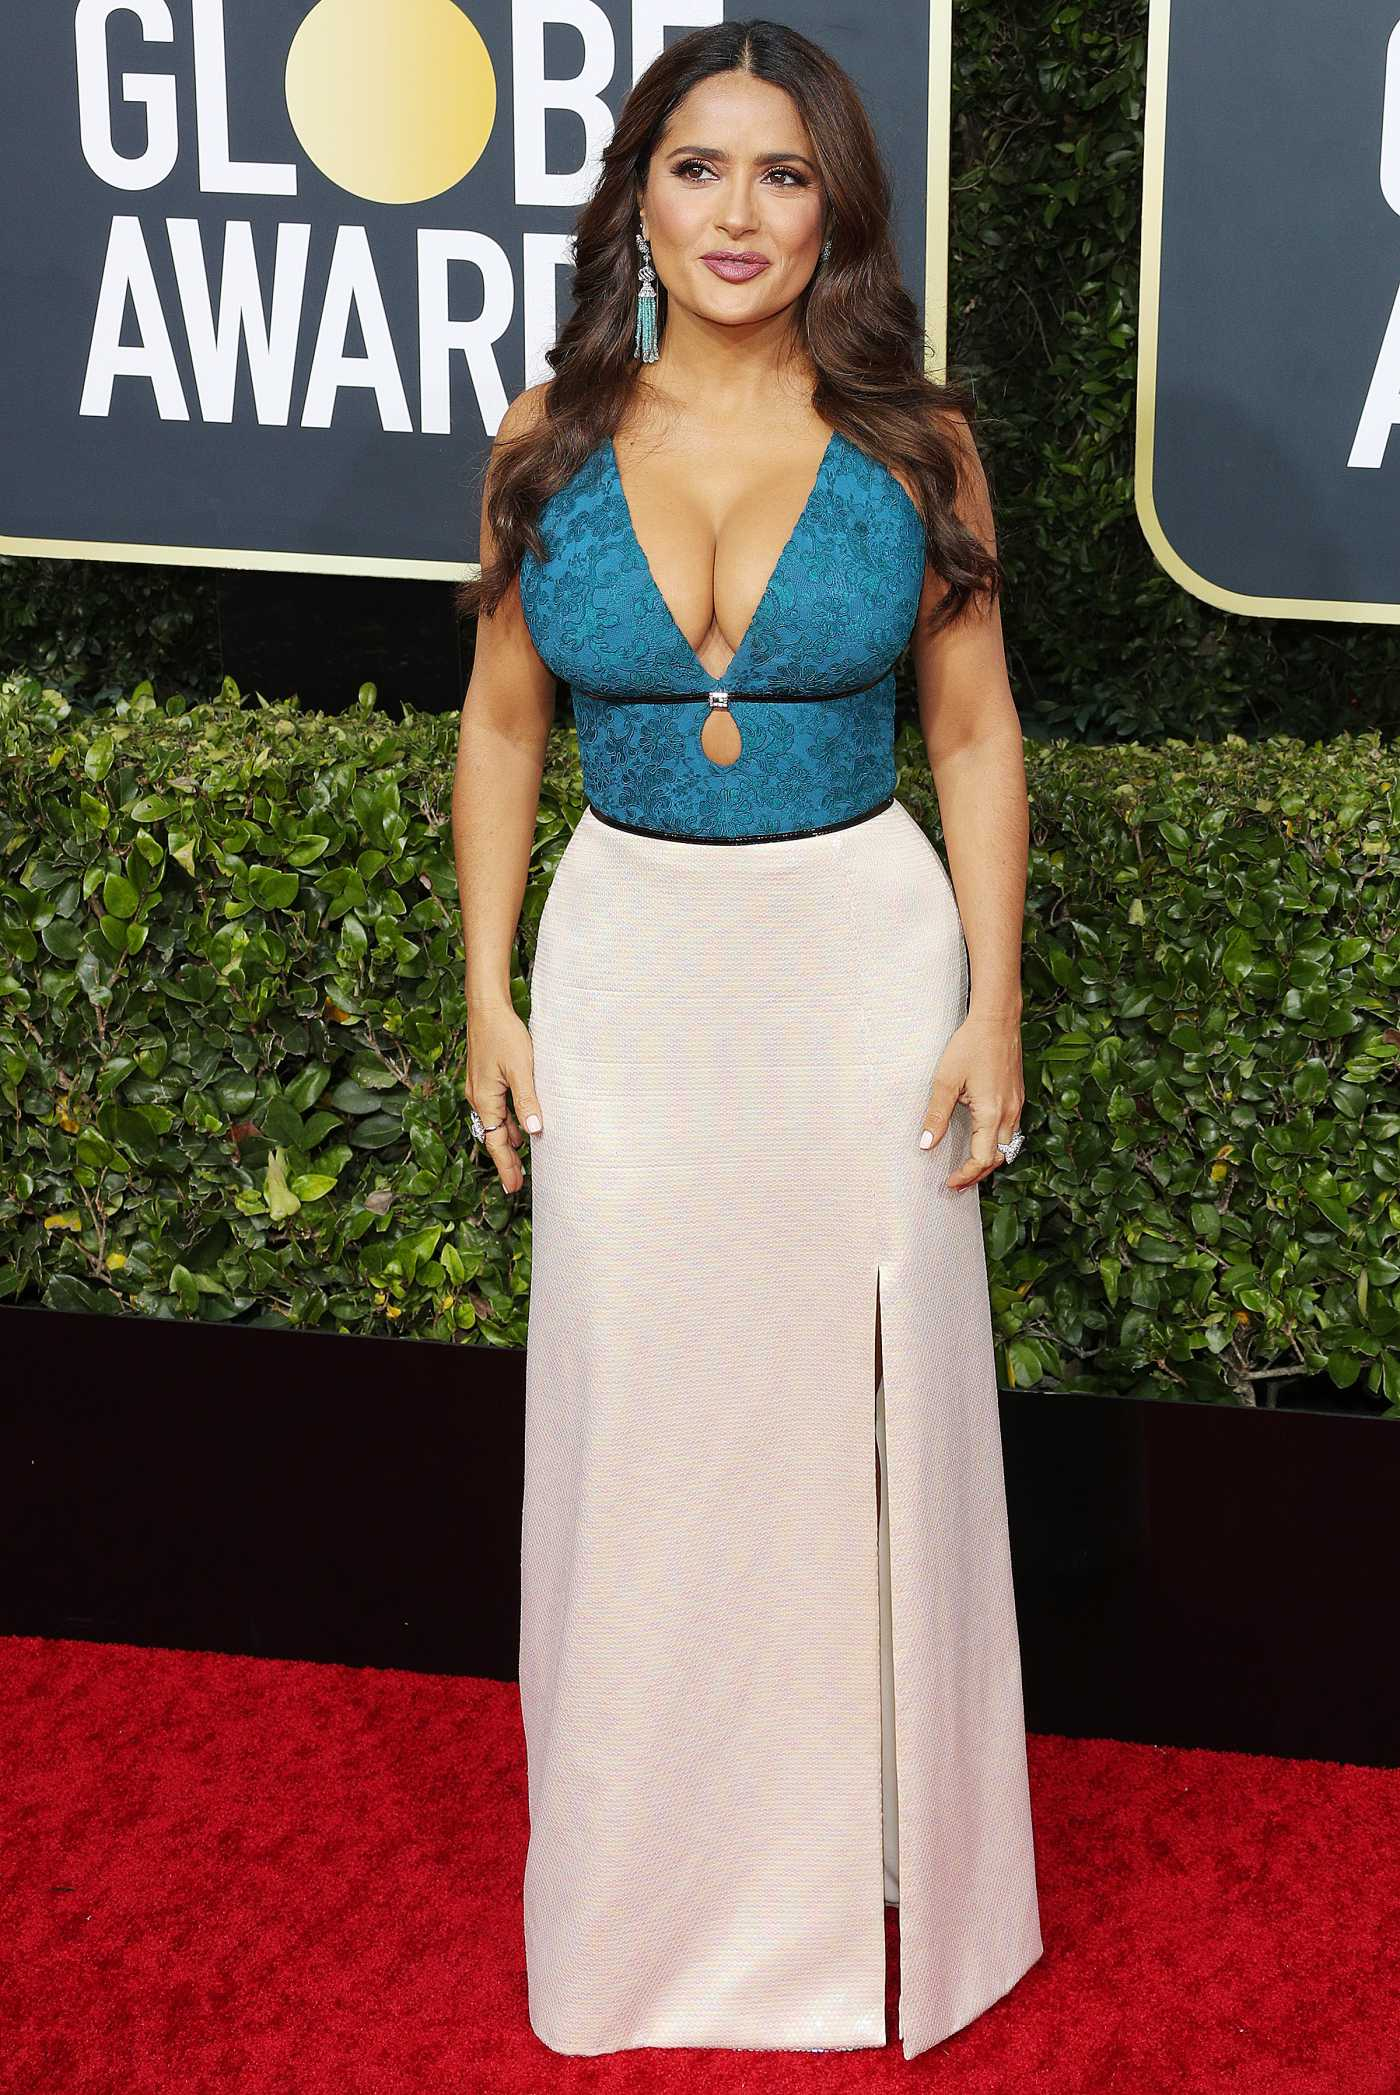 Salma Hayek Attends the 77th Annual Golden Globe Awards at the Beverly Hilton Hotel in Beverly Hills 01/05/2020